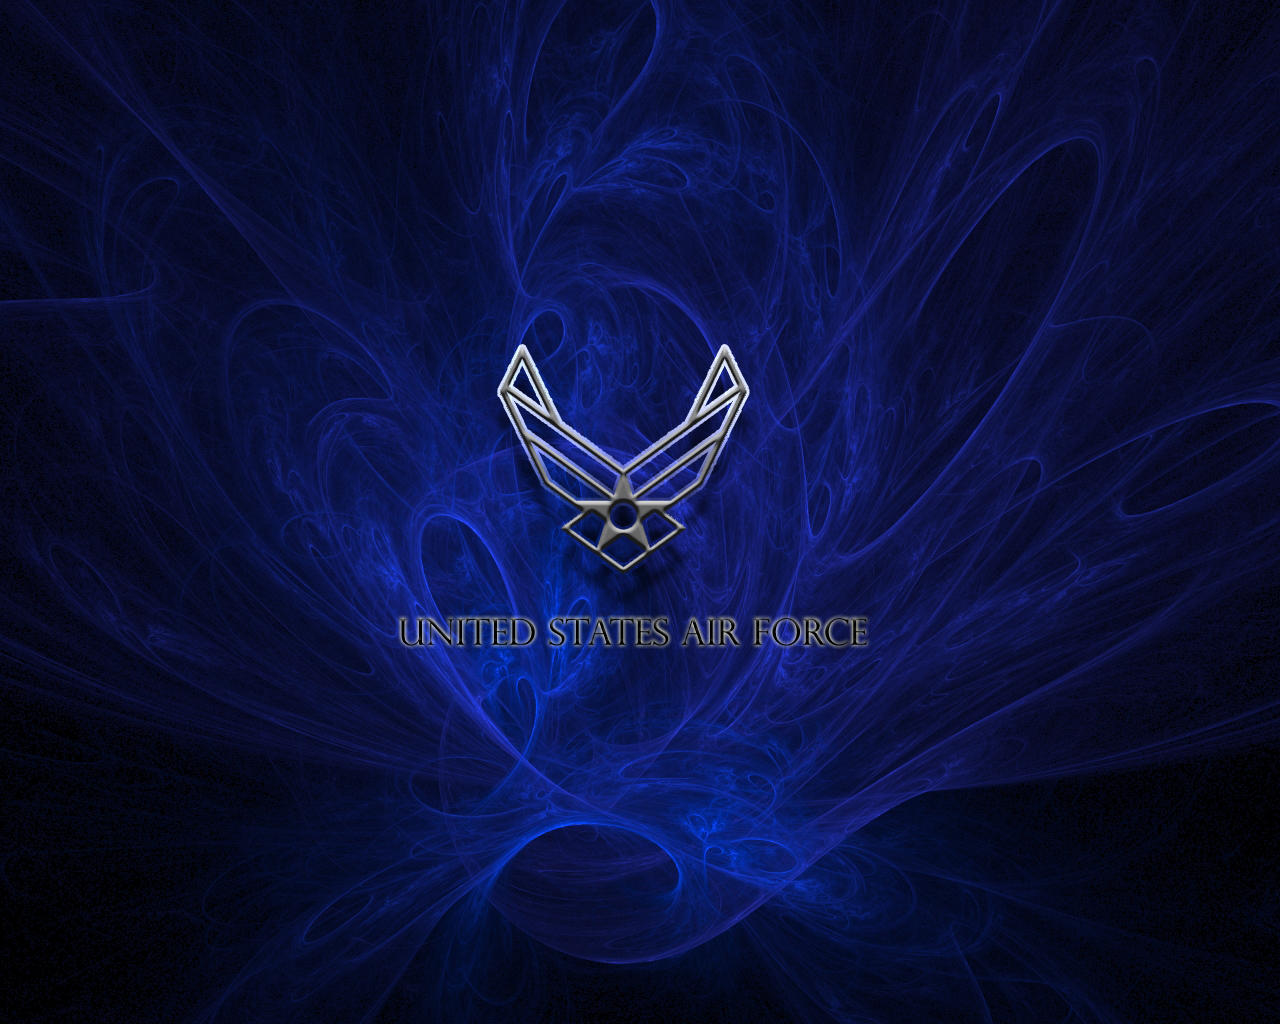 Usaf Logo Wallpaper A tribute to the usaf  byUsaf Iphone Wallpaper